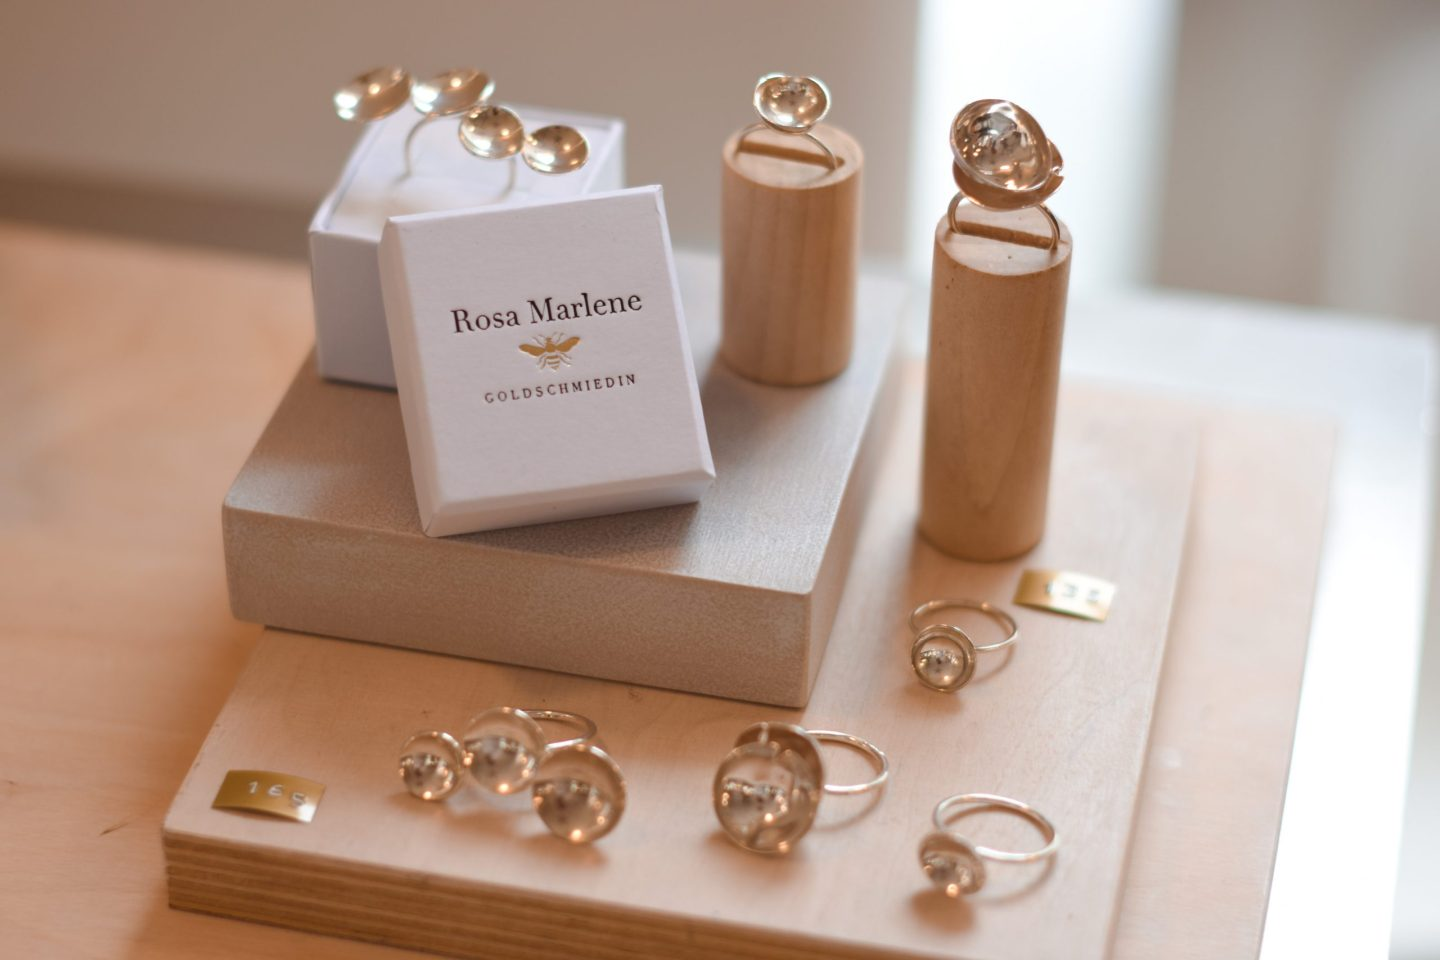 Meet the 29-Year-Old Who Is The Youngest Independent Goldsmith in Austria: Rosa Marlene